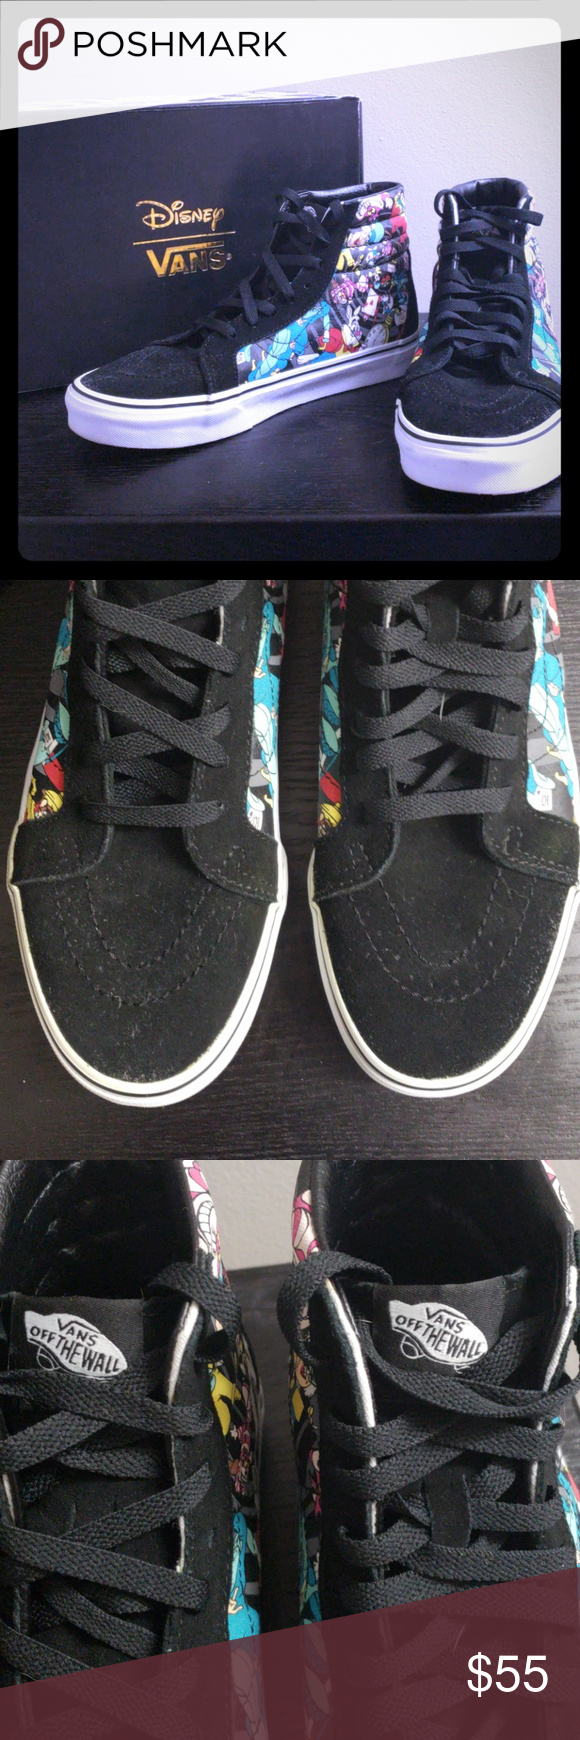 339d8e8c6fdc7f Vans Off The Wall Disney s Alice in Wonderland These are the SK8-Hi style.